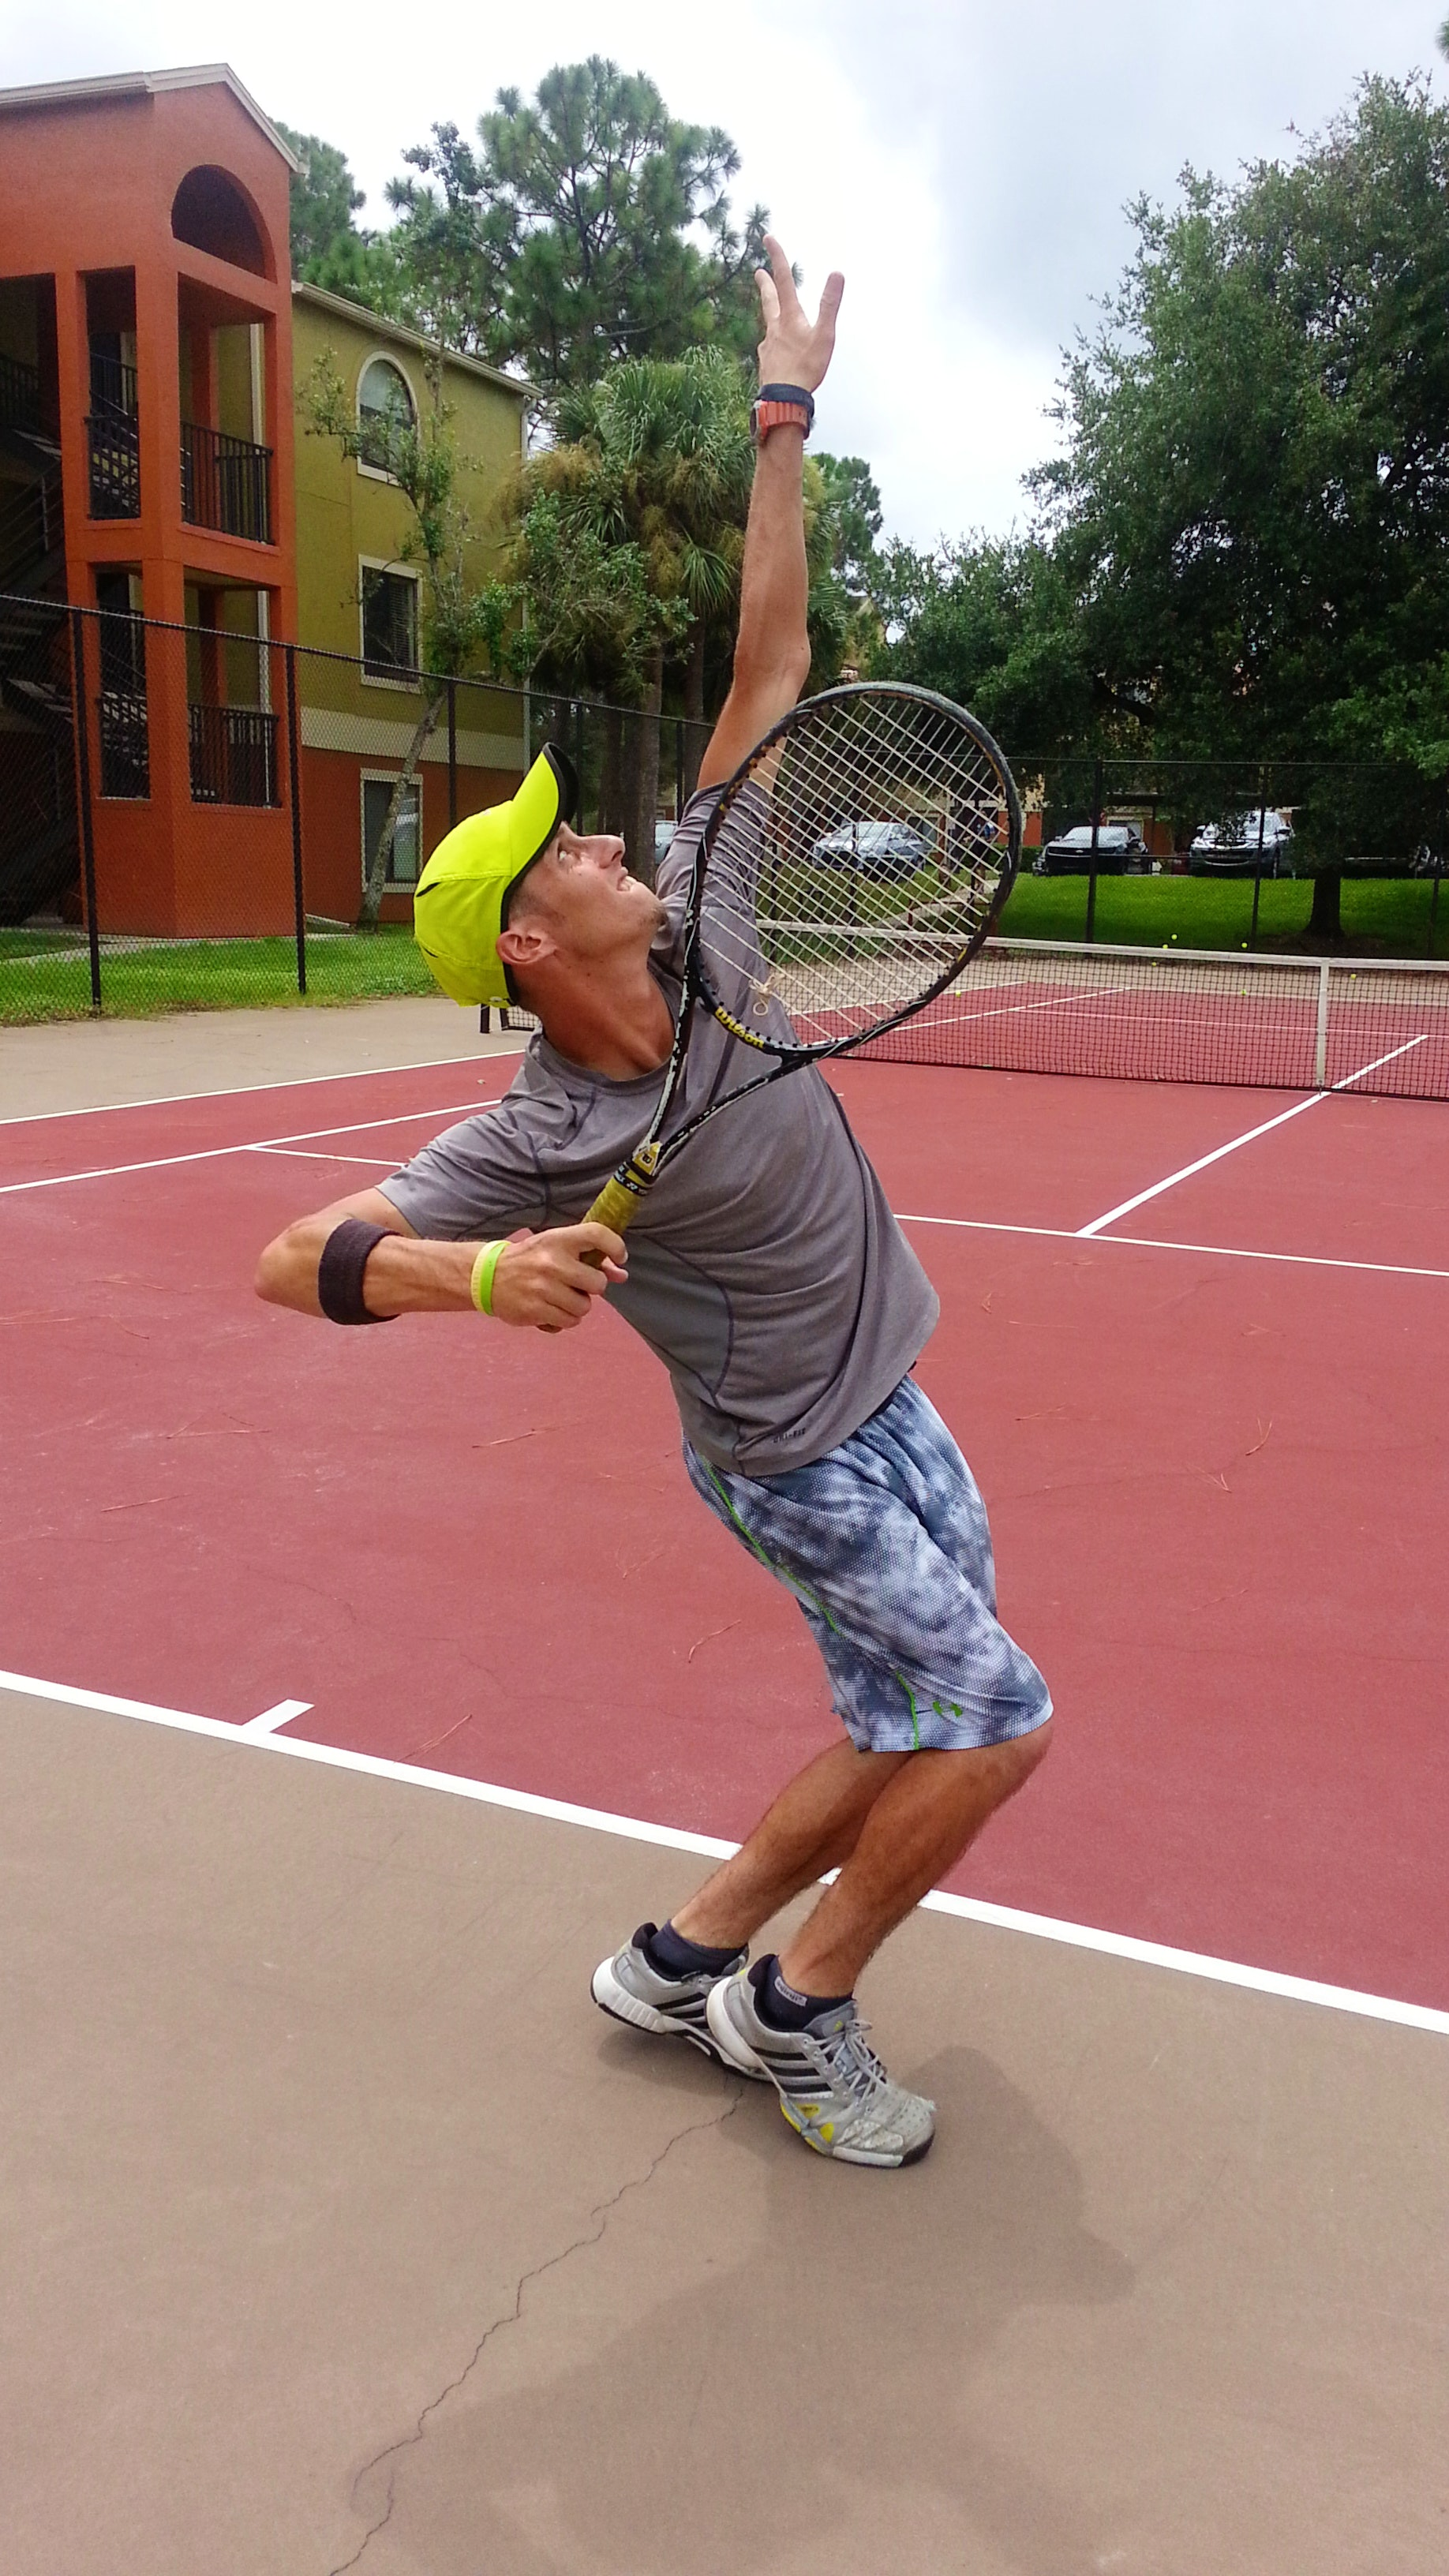 Peter M. teaches tennis lessons in Lake Mary, FL